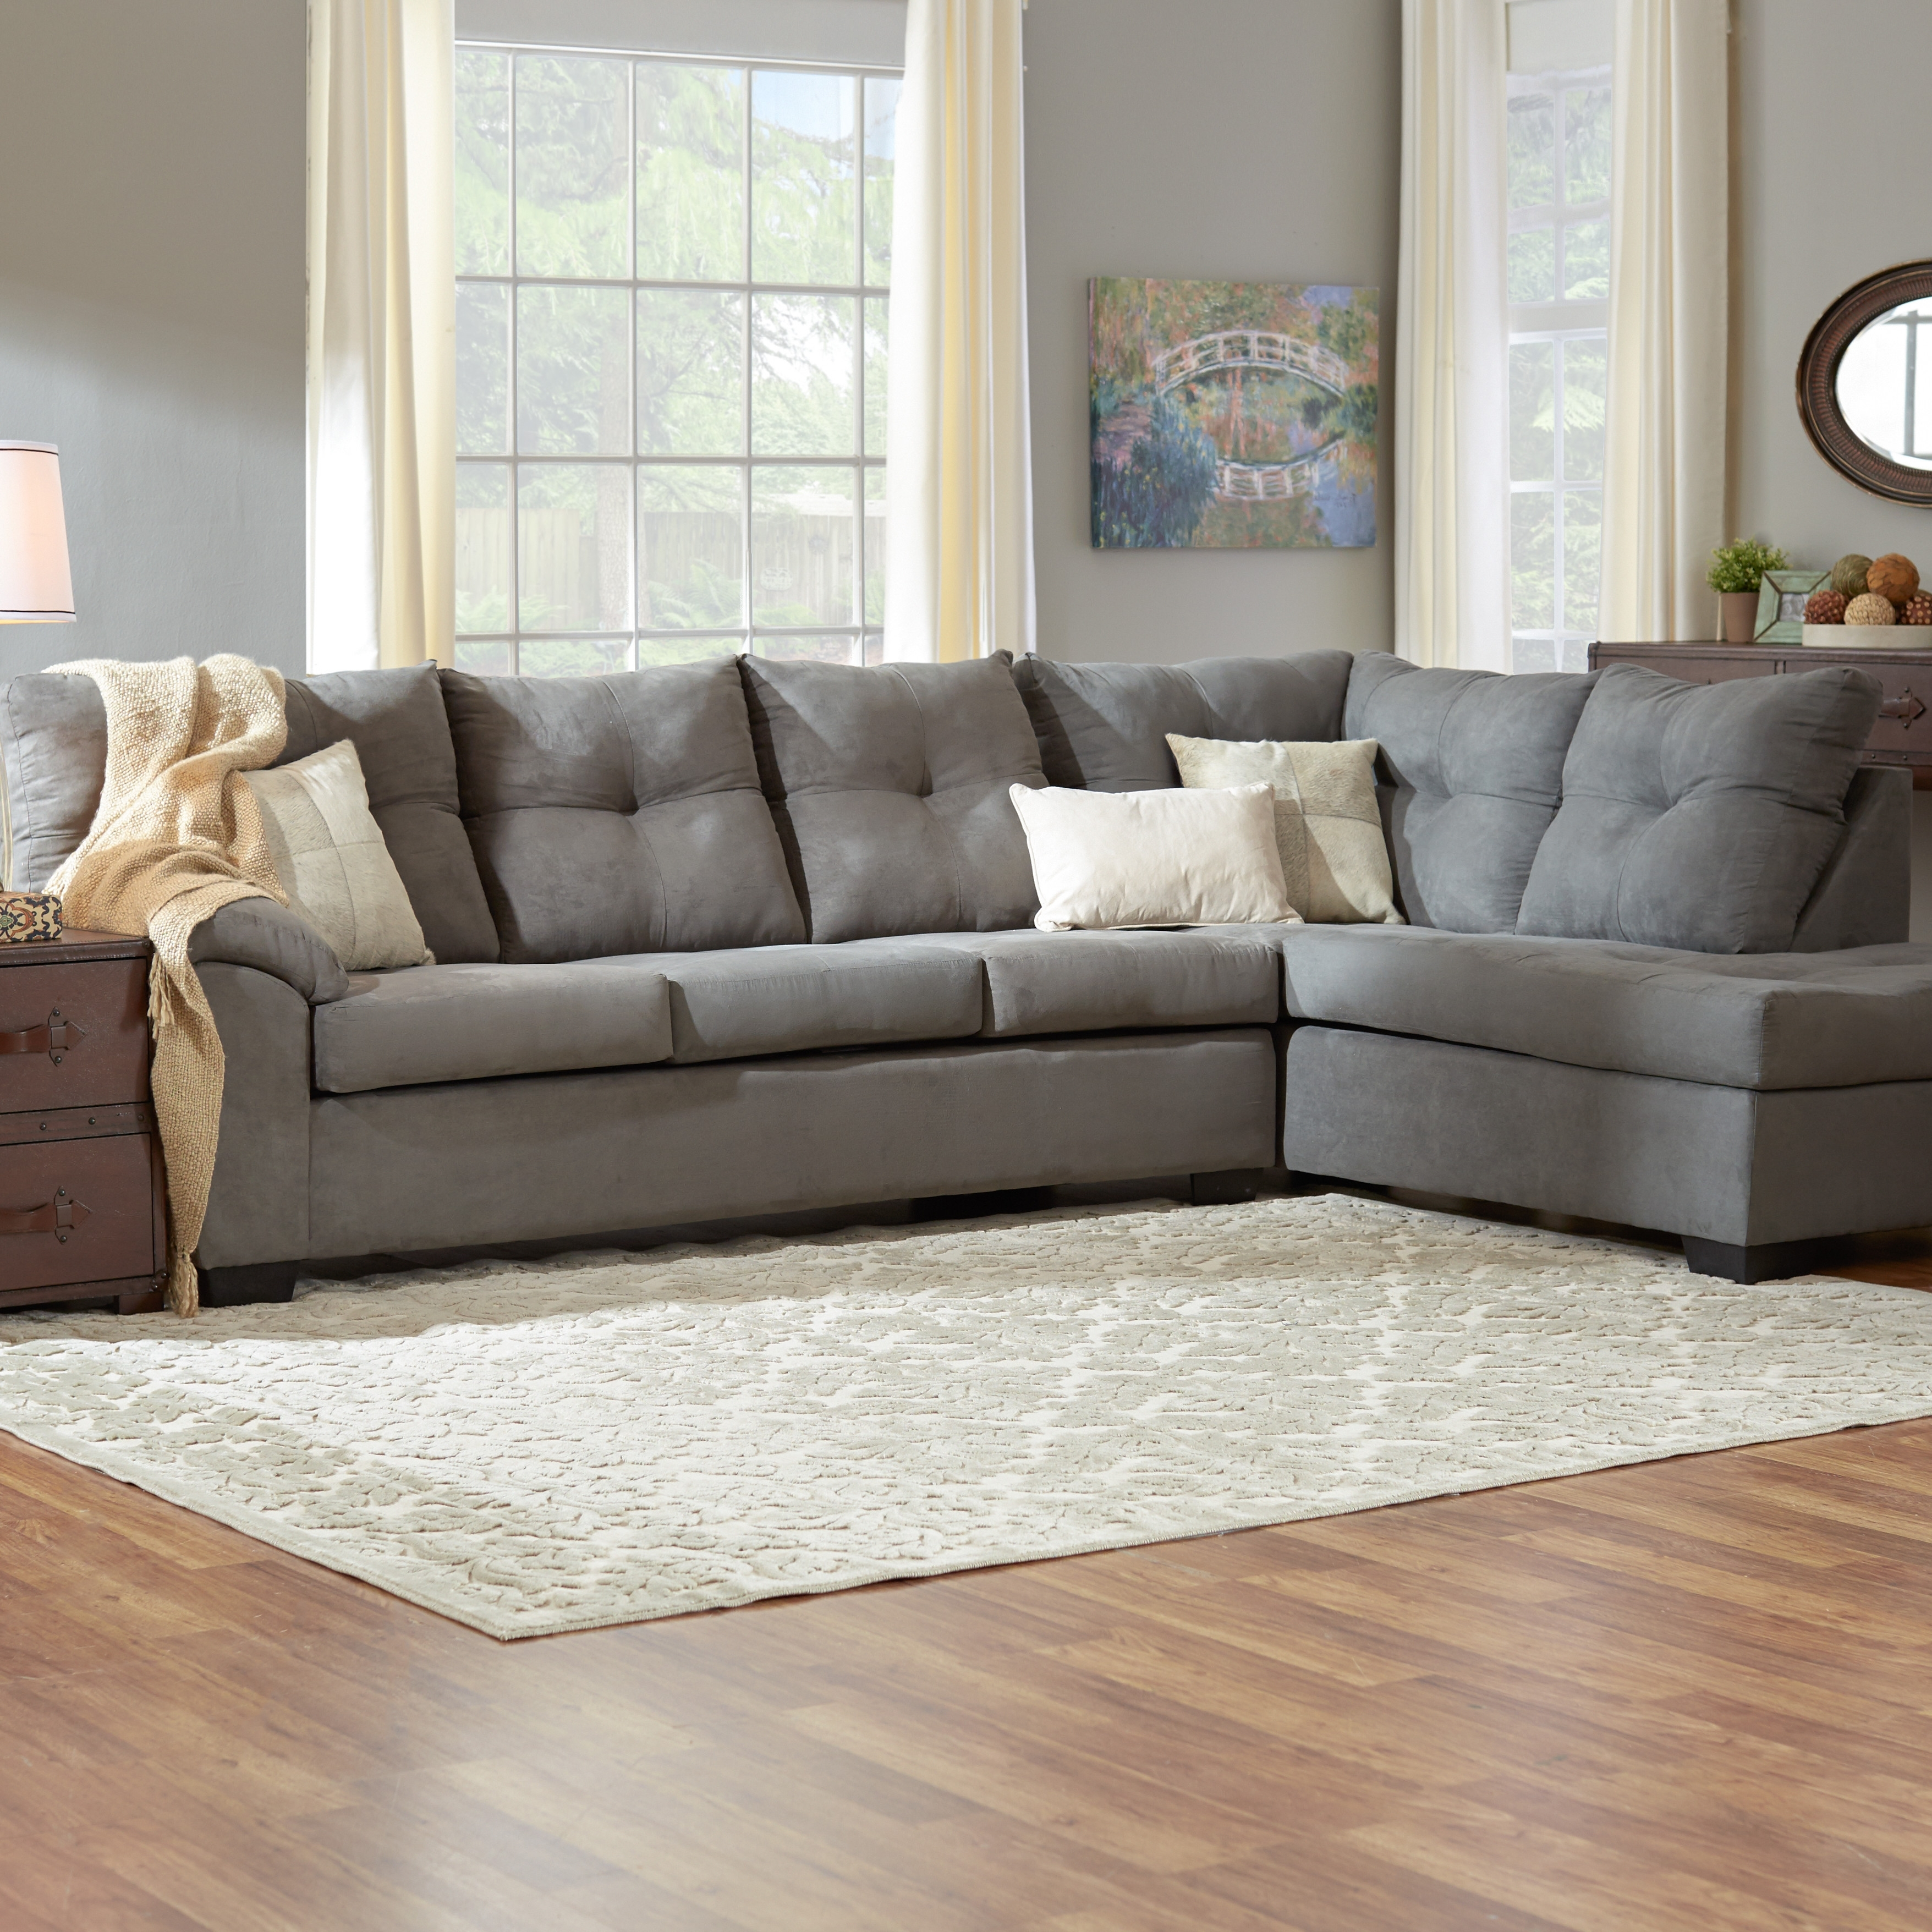 Sectional Sofa : Extra Large Sectional Sofas Oversized Sectional throughout Tufted Sectional Sofas (Image 7 of 10)